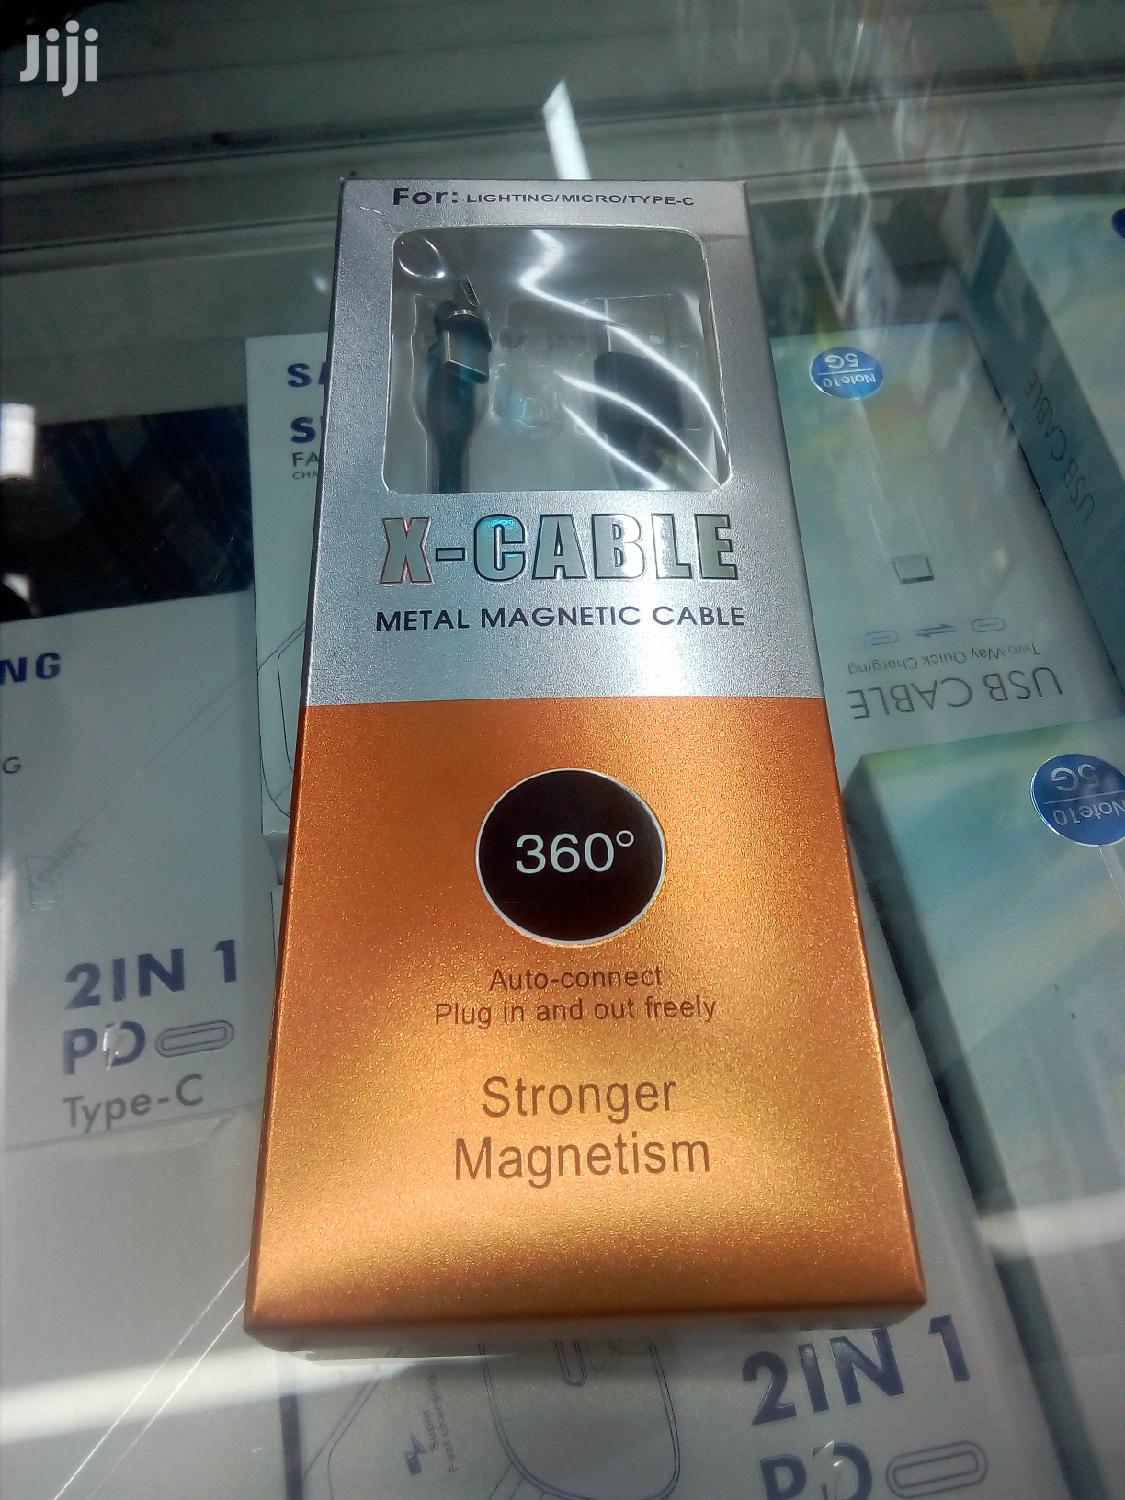 Magnetic Charging Cable | Accessories for Mobile Phones & Tablets for sale in Nairobi Central, Nairobi, Kenya